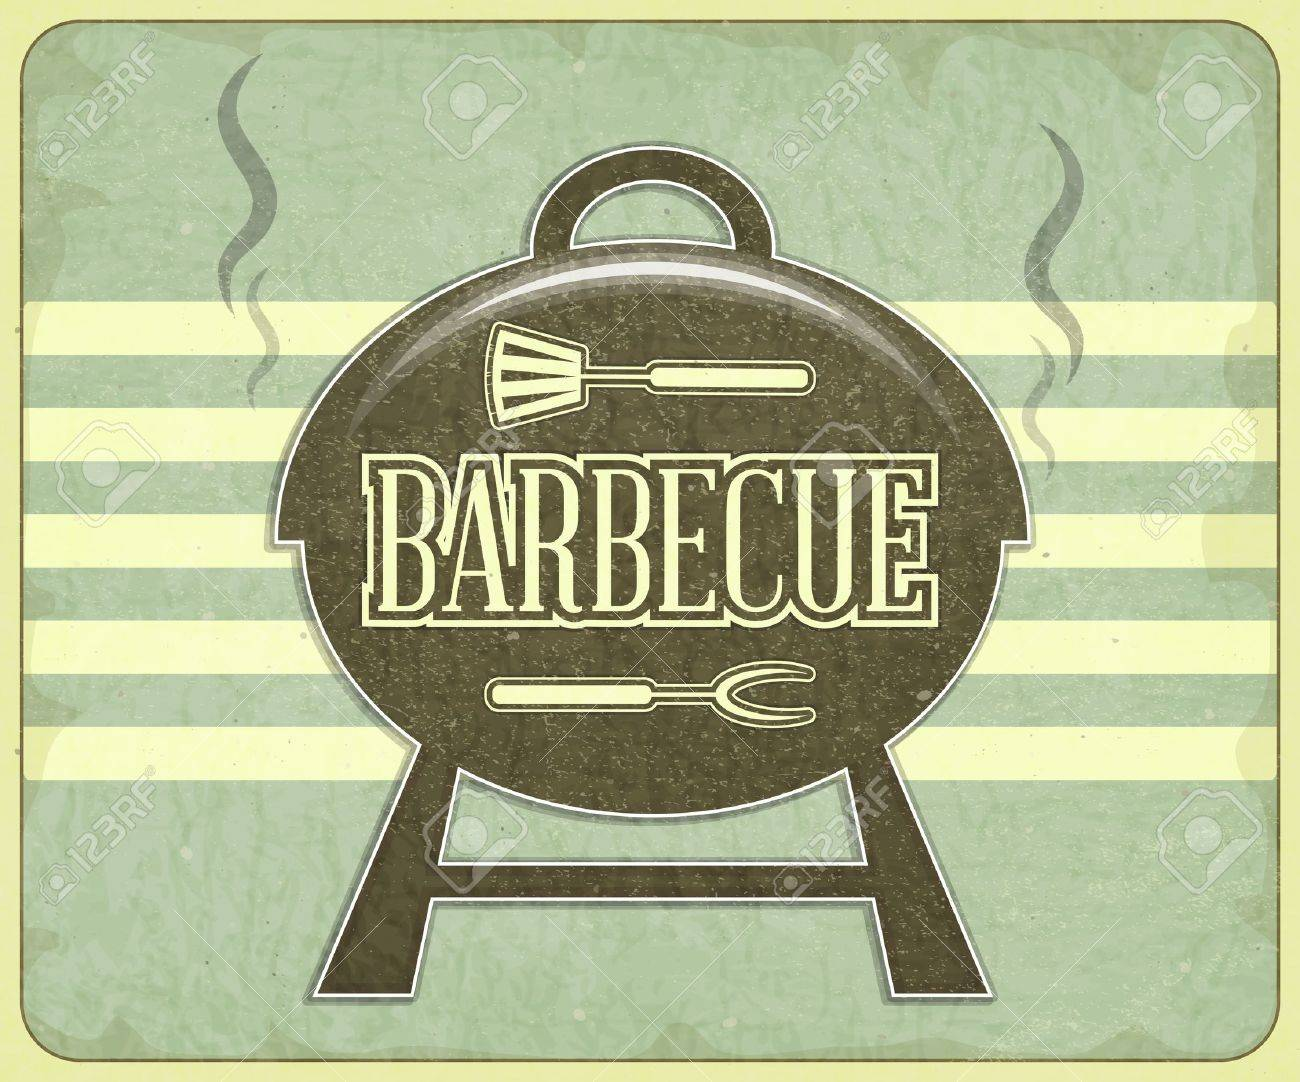 Cookout border clipart hot dog cookout invite stock vector art - Bbq Background Retro Design Grill And Bbq Menu Illustration Illustration